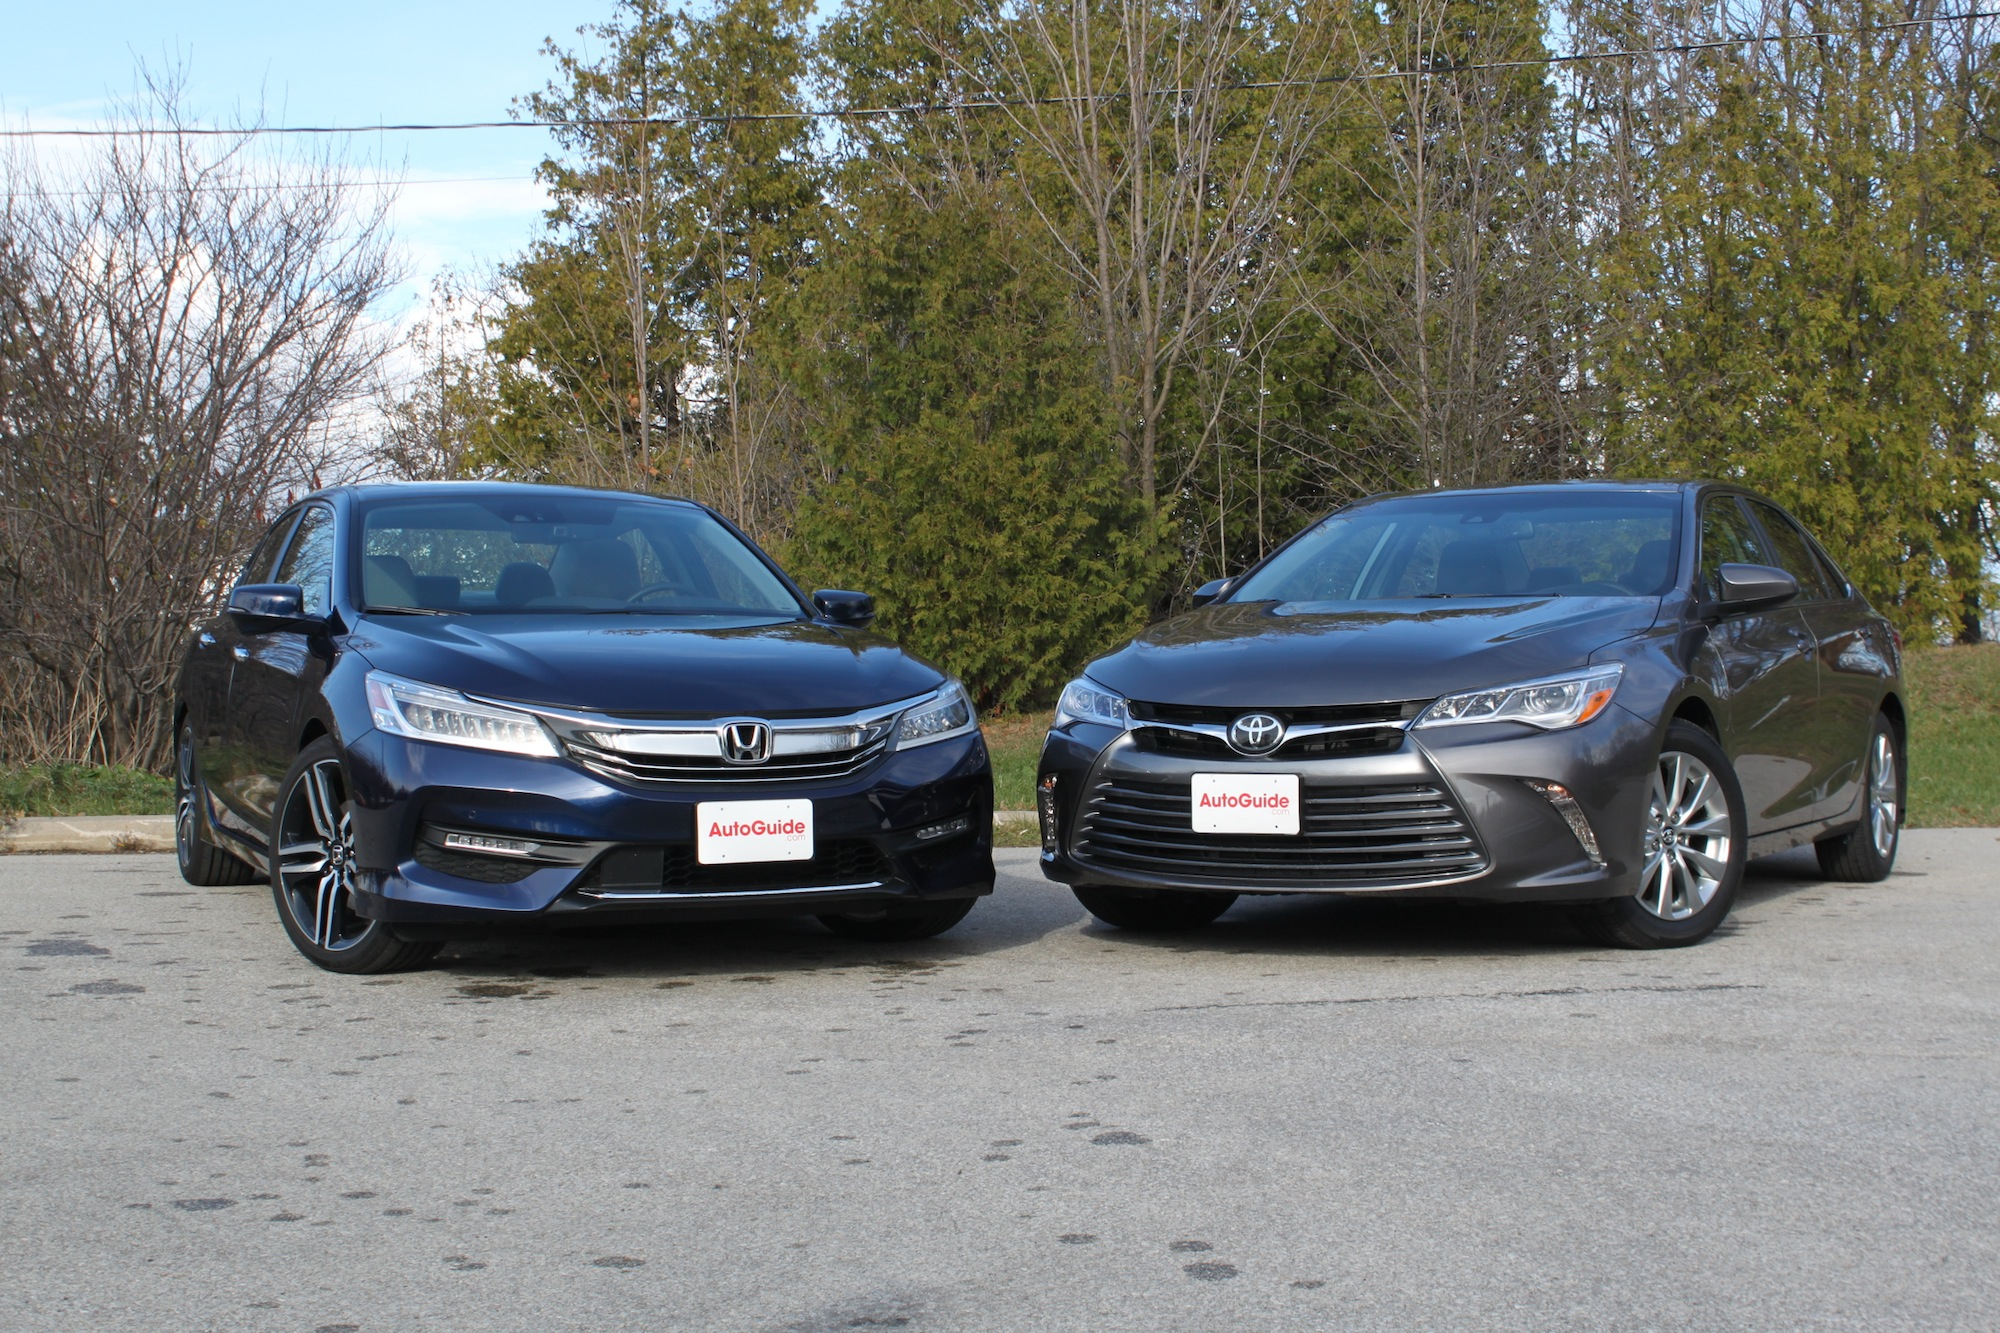 Delightful 2016 Honda Accord Vs 2016 Toyota Camry